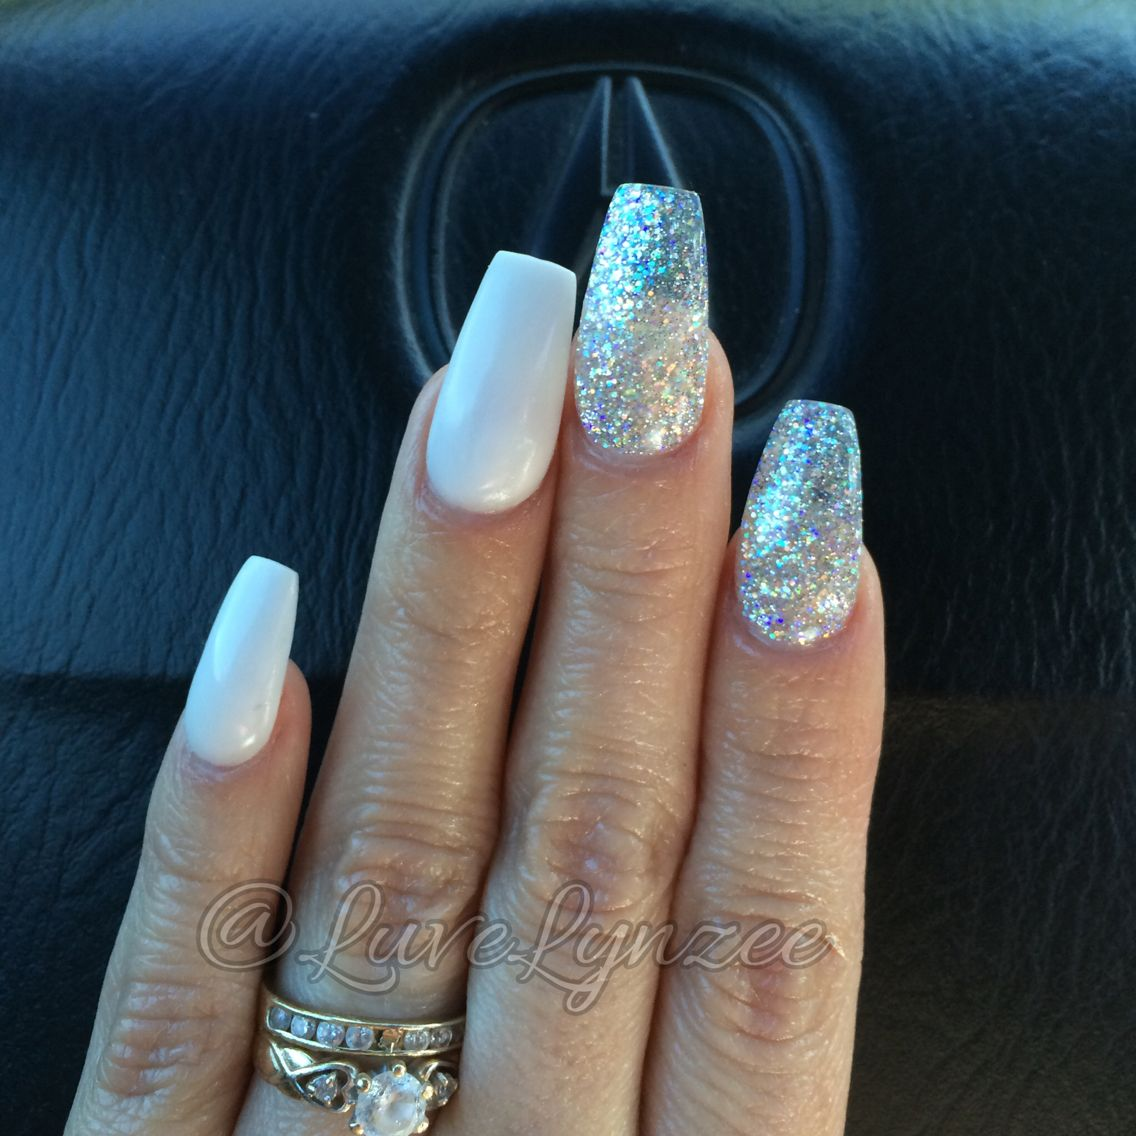 21 Chic White Acrylic Nails to Copy photo